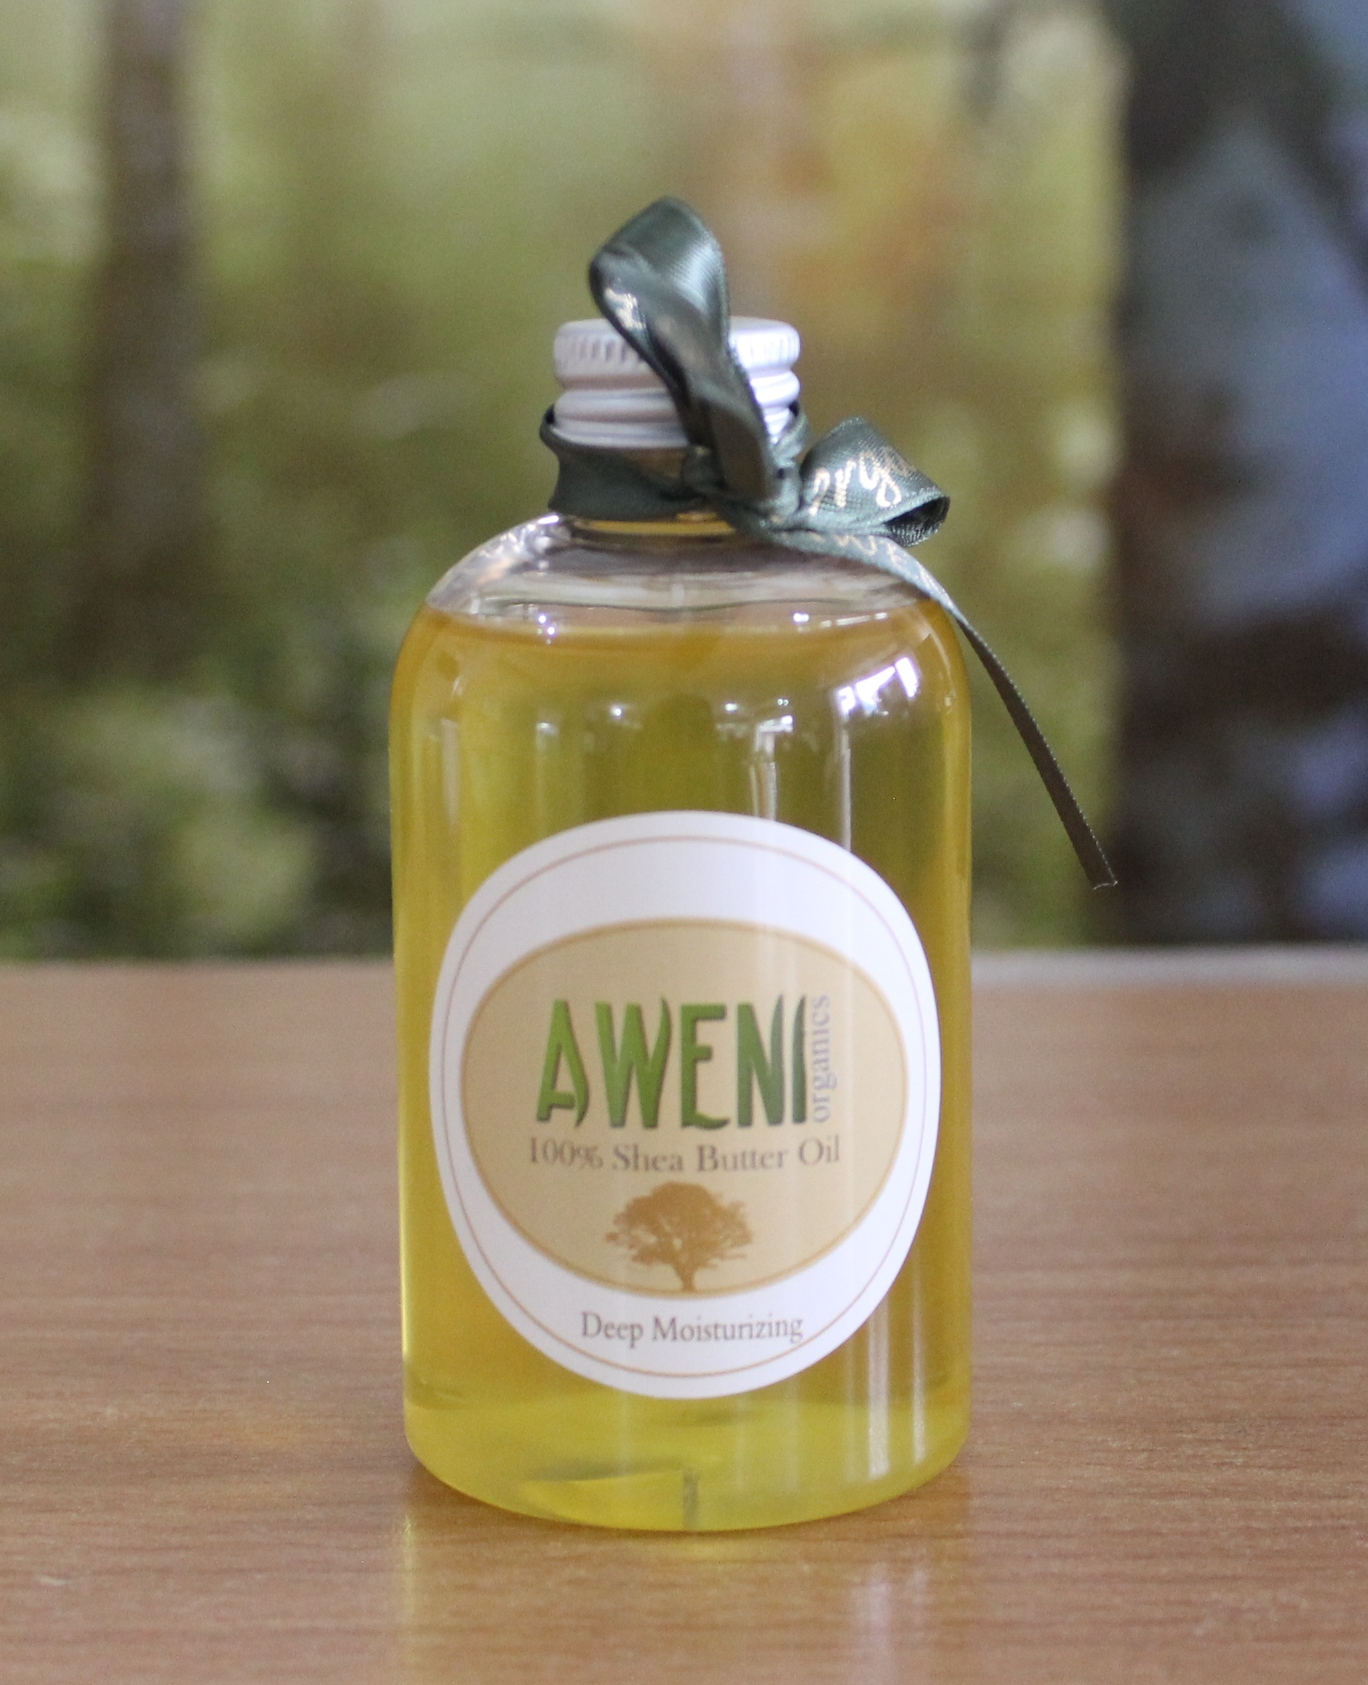 Shea butter oil by Aweni Organics